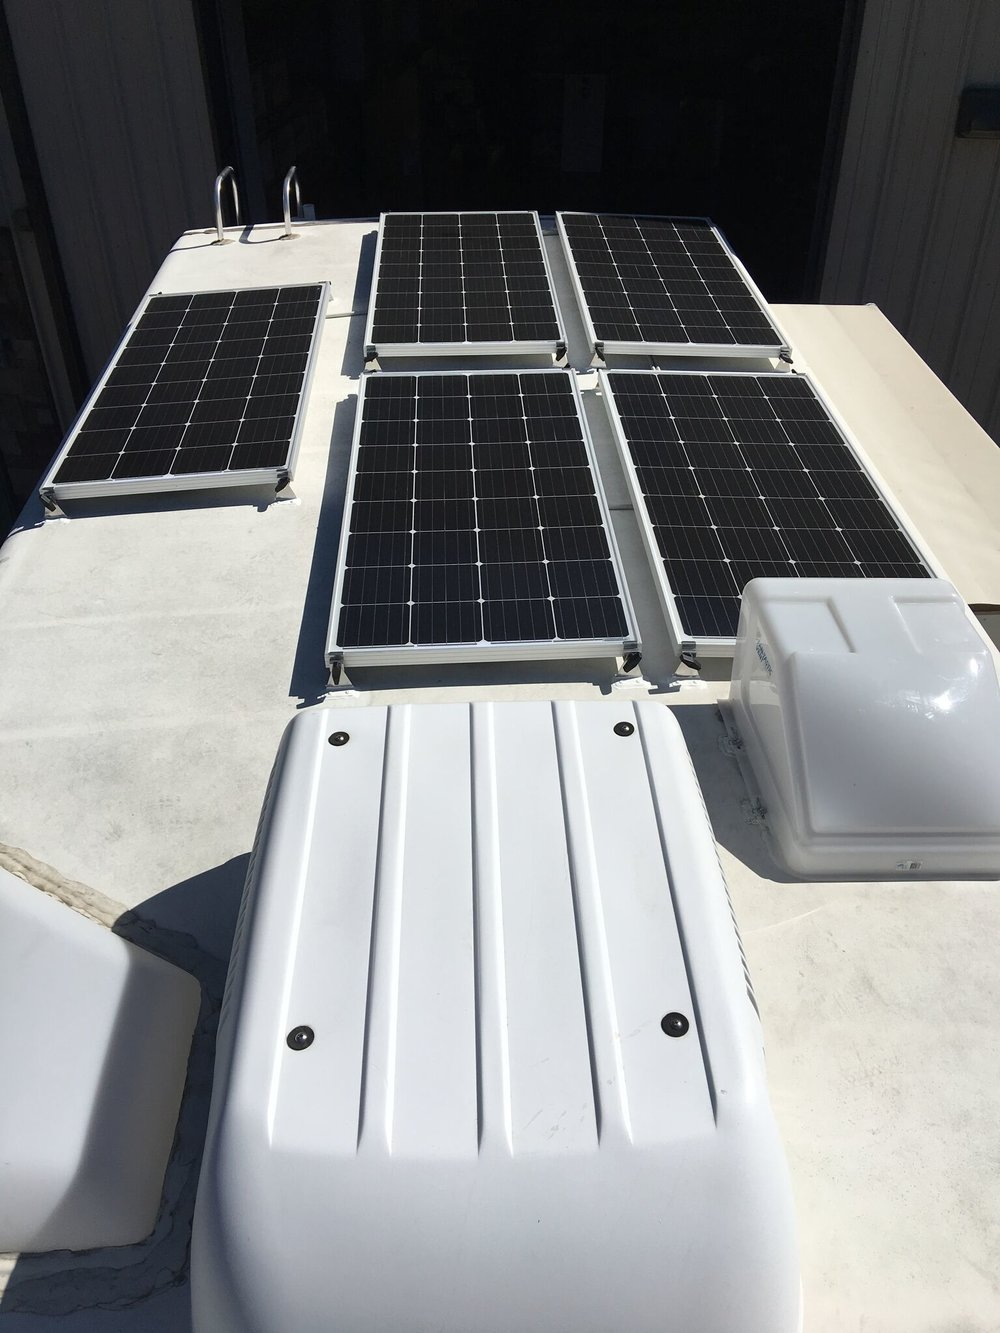 Solar Panel Installation For Rvs Trailers Am Diode Wiring Equipment Added 5x Sf180 Kits 1x Roof Combiner Box Victron Bluesolar Smart